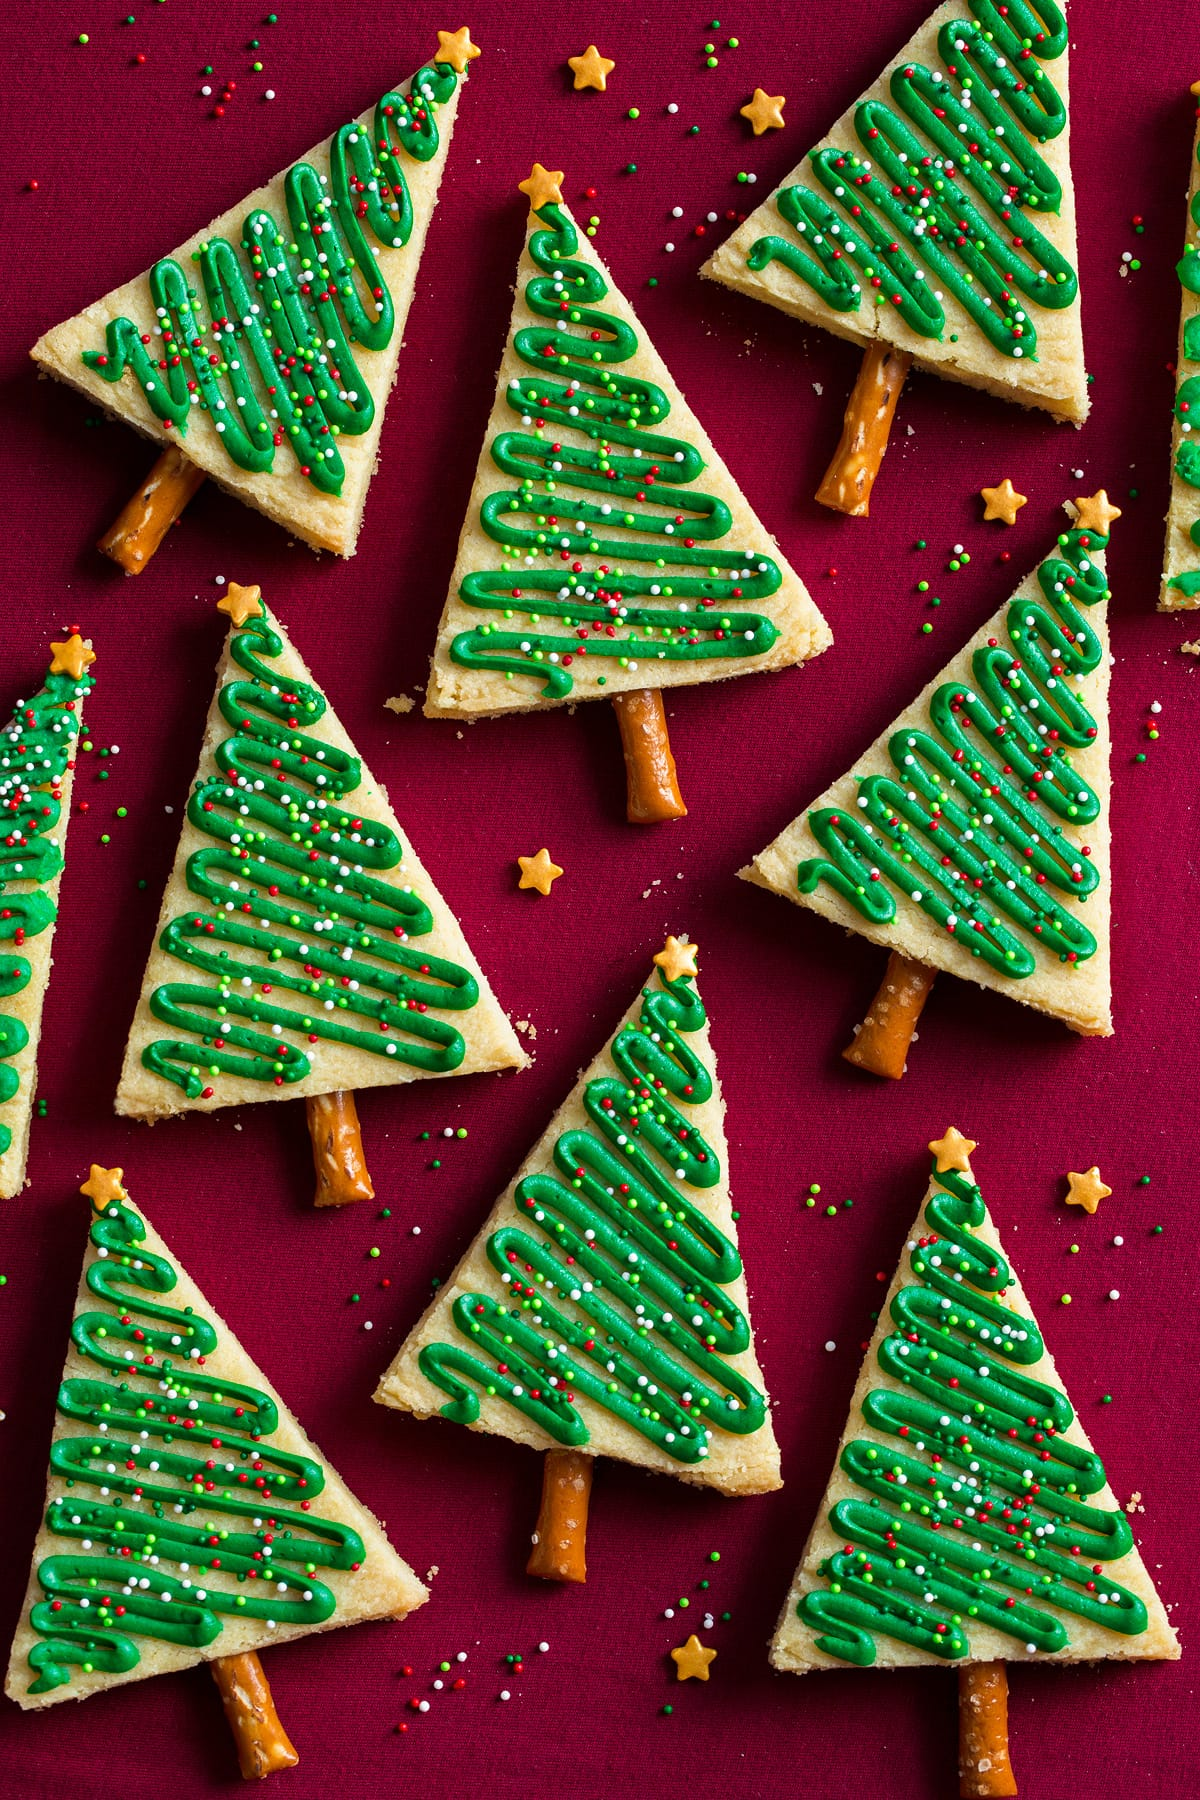 Triangular decorated Christmas tree cookies shown on a red surface.